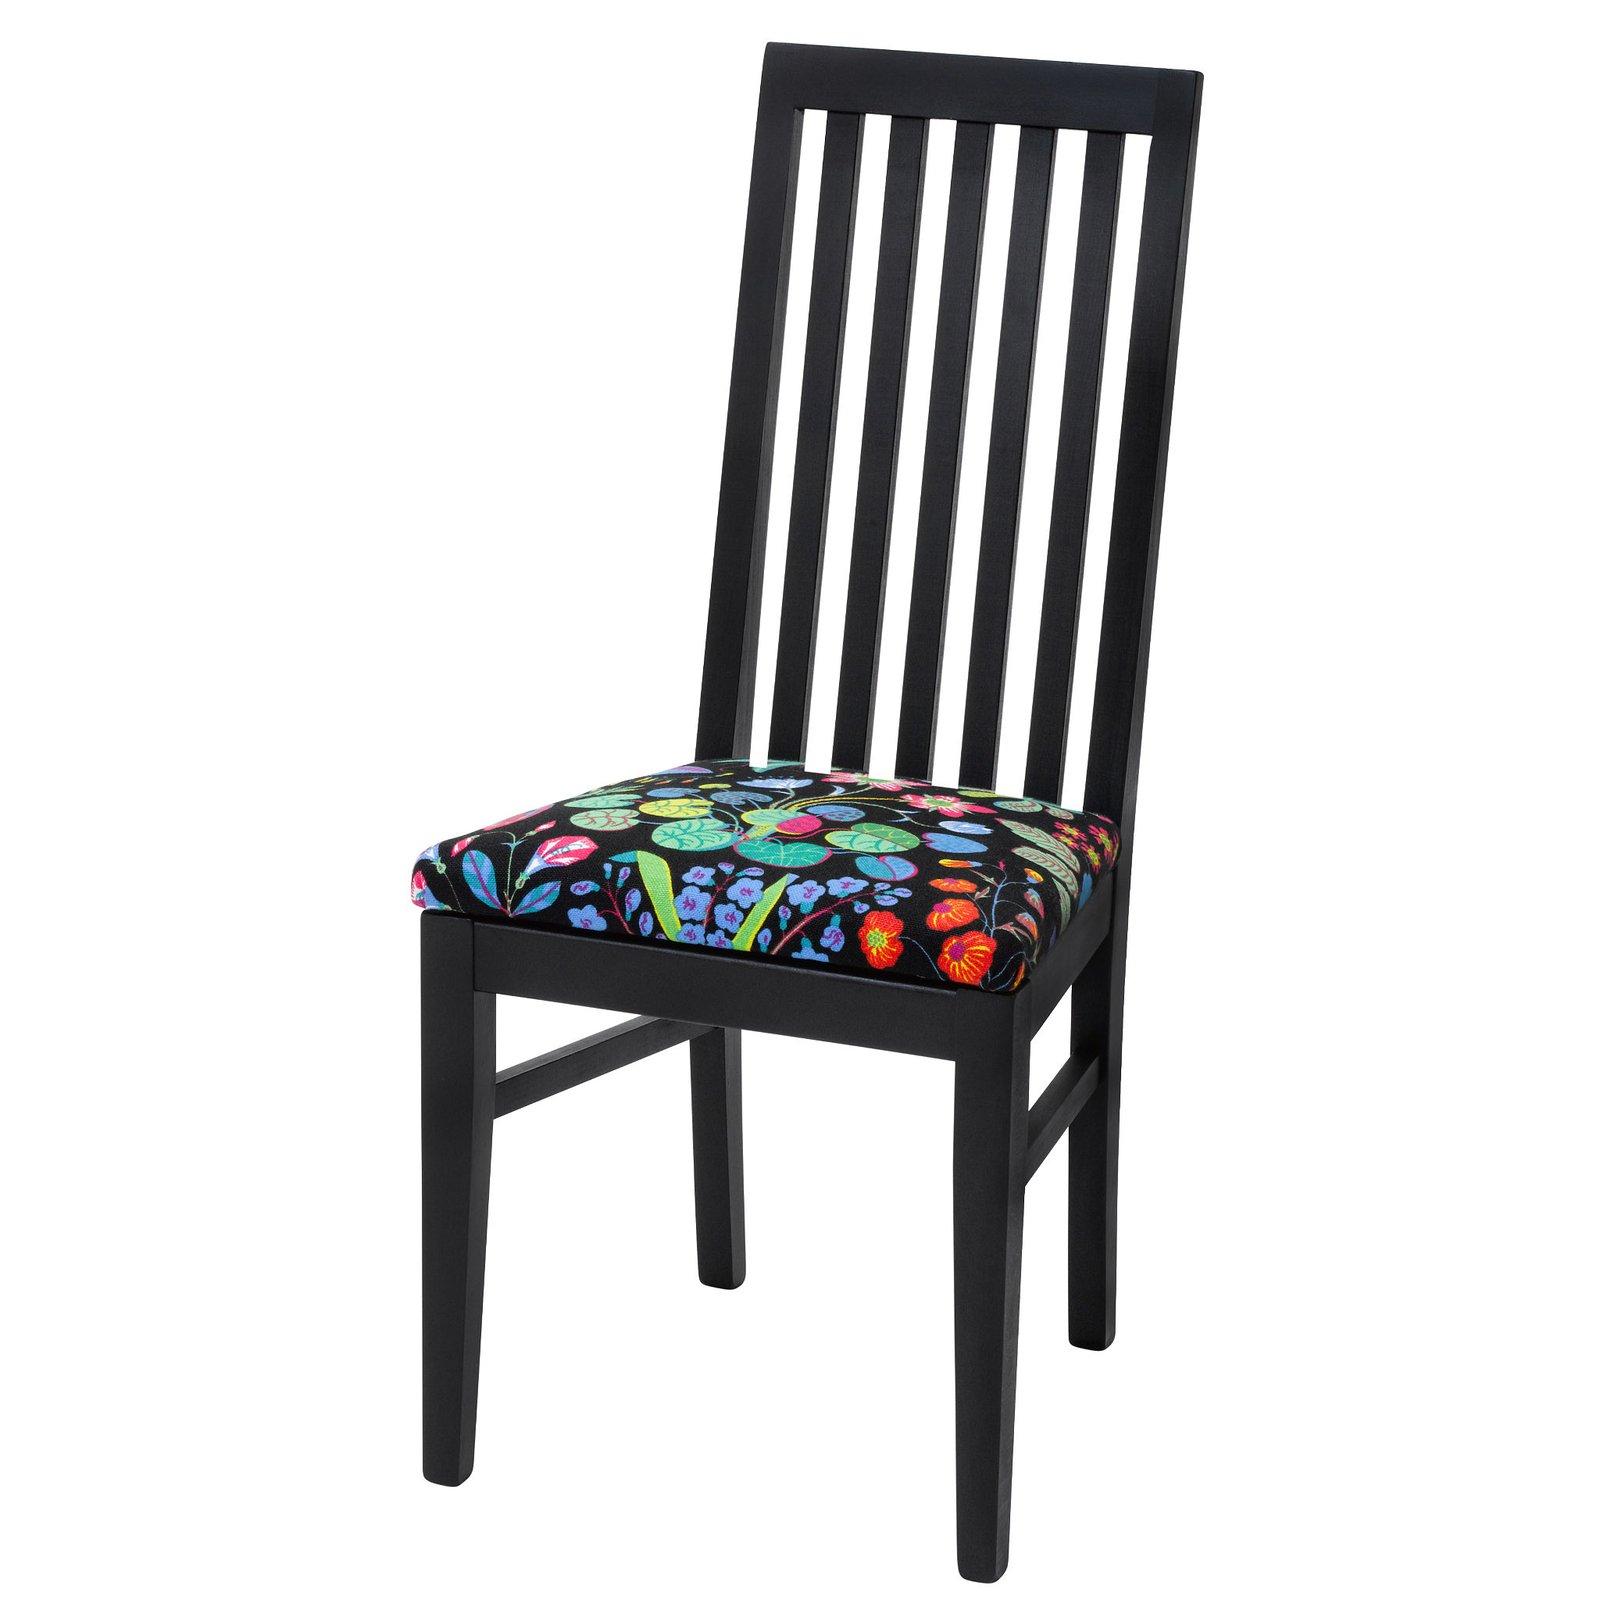 Italian Dining Chairs Italian Dining Chair Alice Contemporary By Cheeky Chairs Using Josef Frank Under Ekvatorn In Black